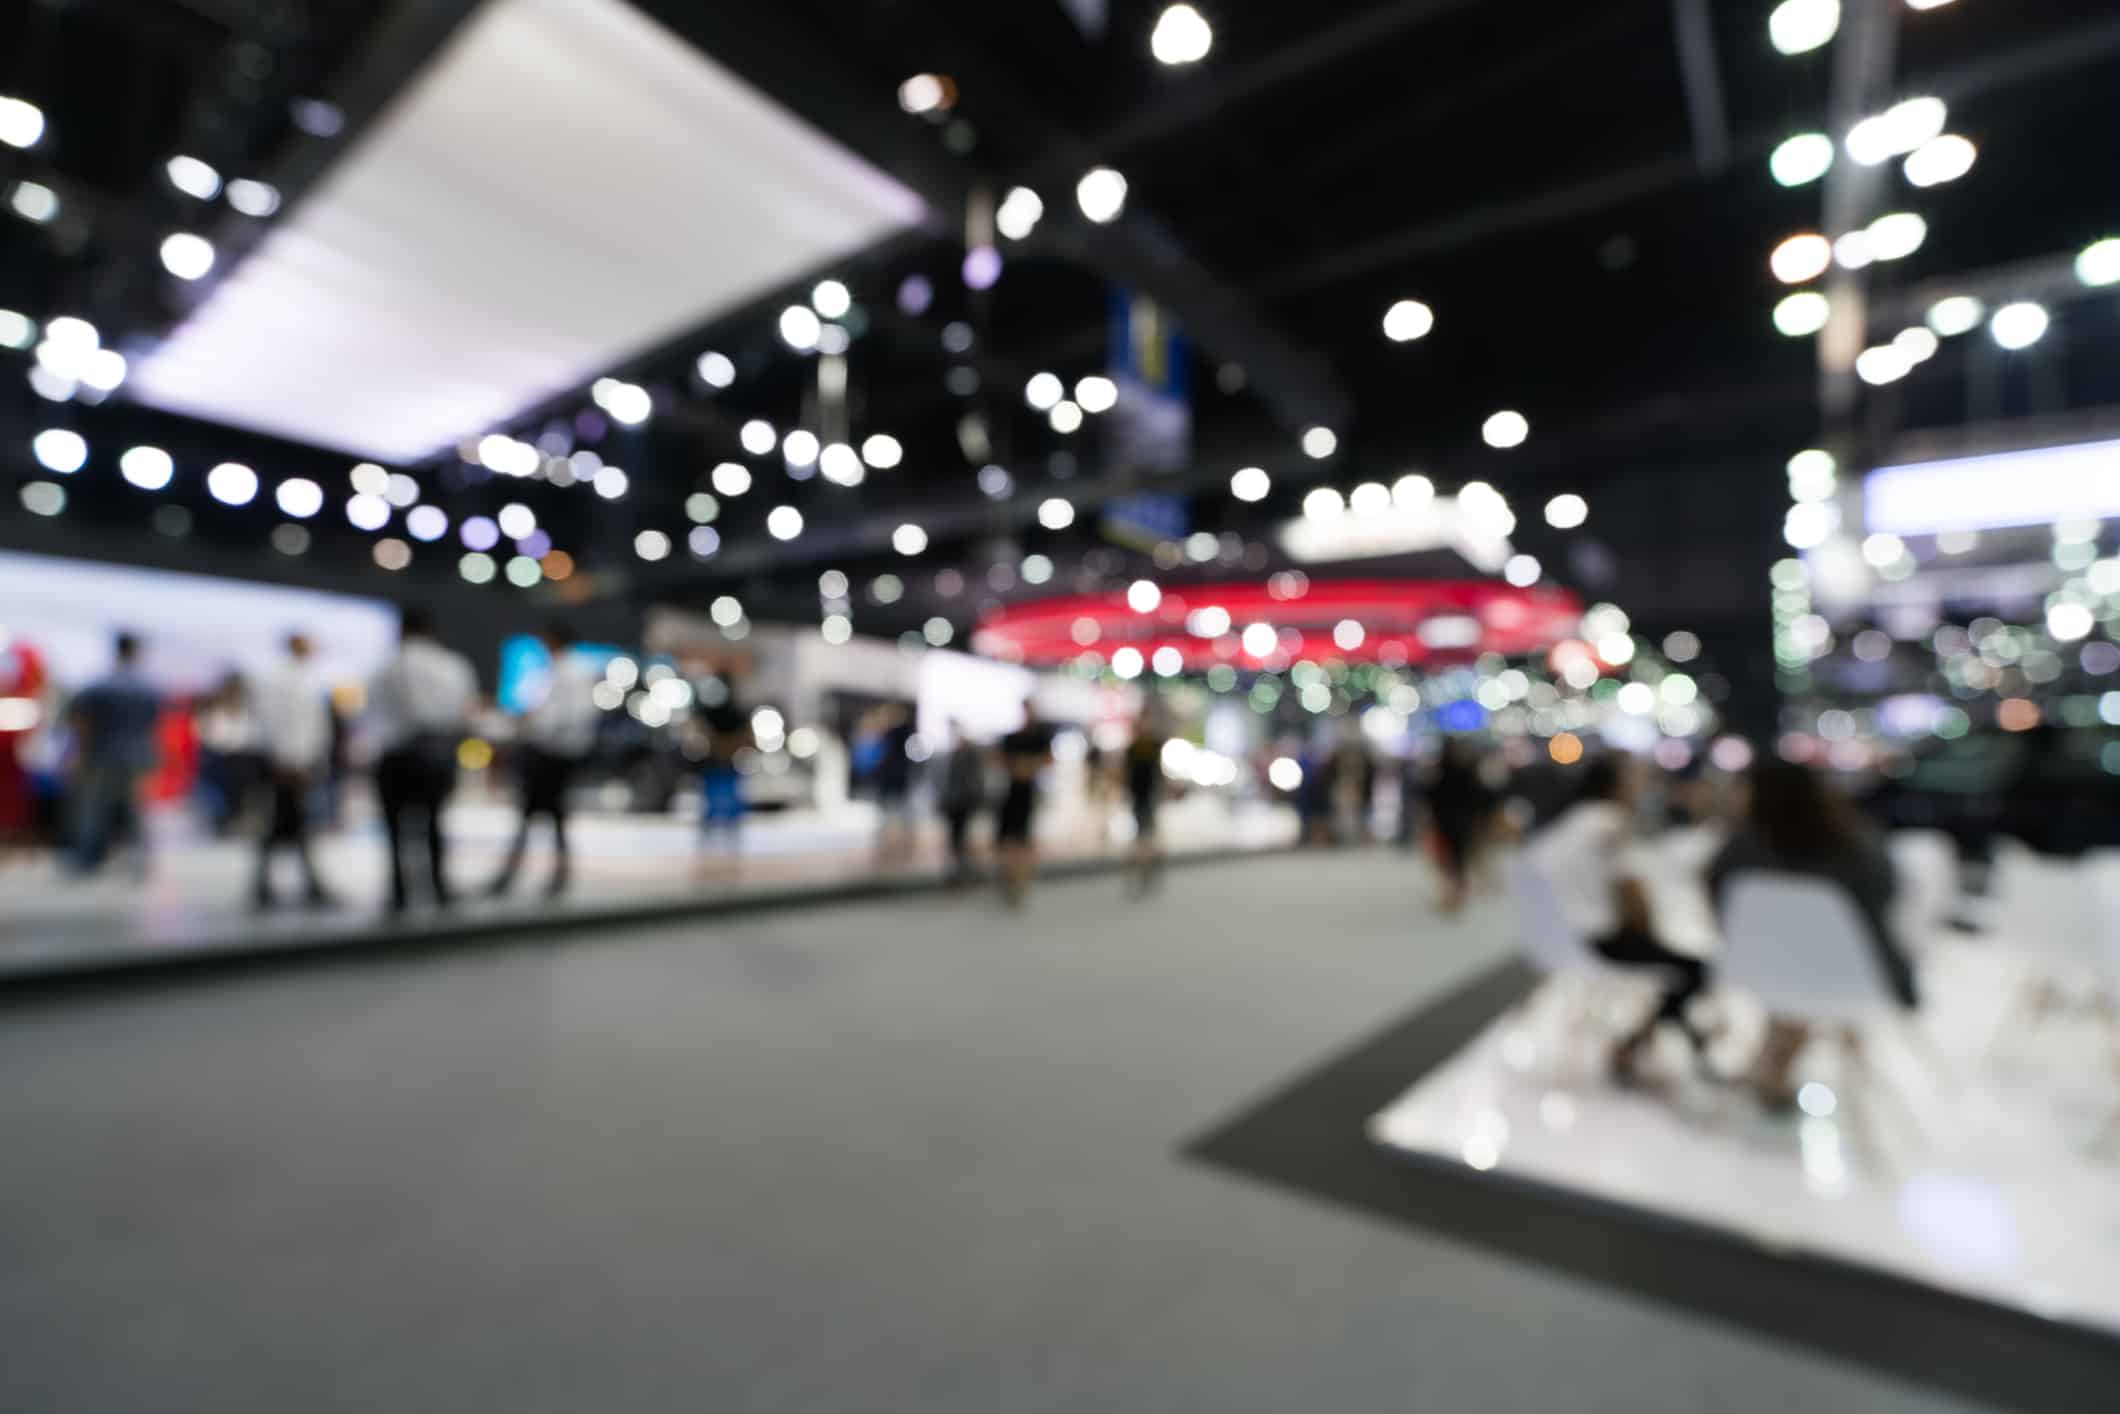 Blurred exhibition hall